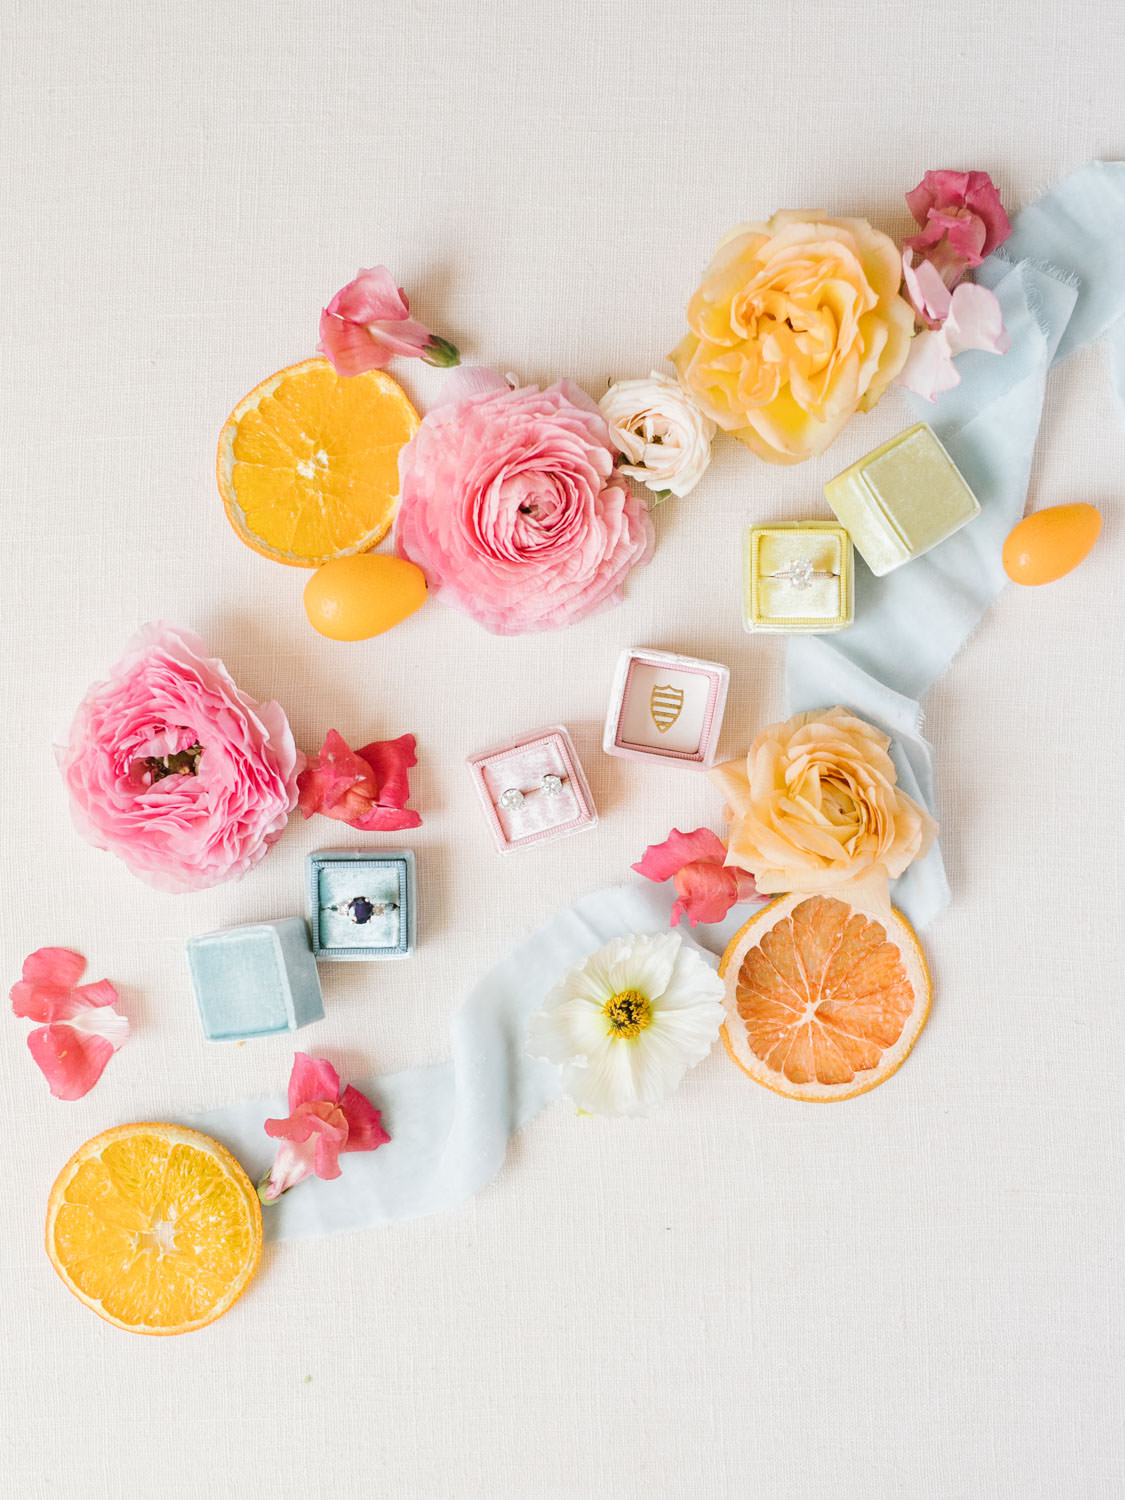 Yellow, pink, and blue Mrs Boxes with bride's rings and earrings styled with blue ribbon, dried fruits, and fresh pink flowers. Fairmont Grand del Mar wedding published on Martha Stewart Weddings